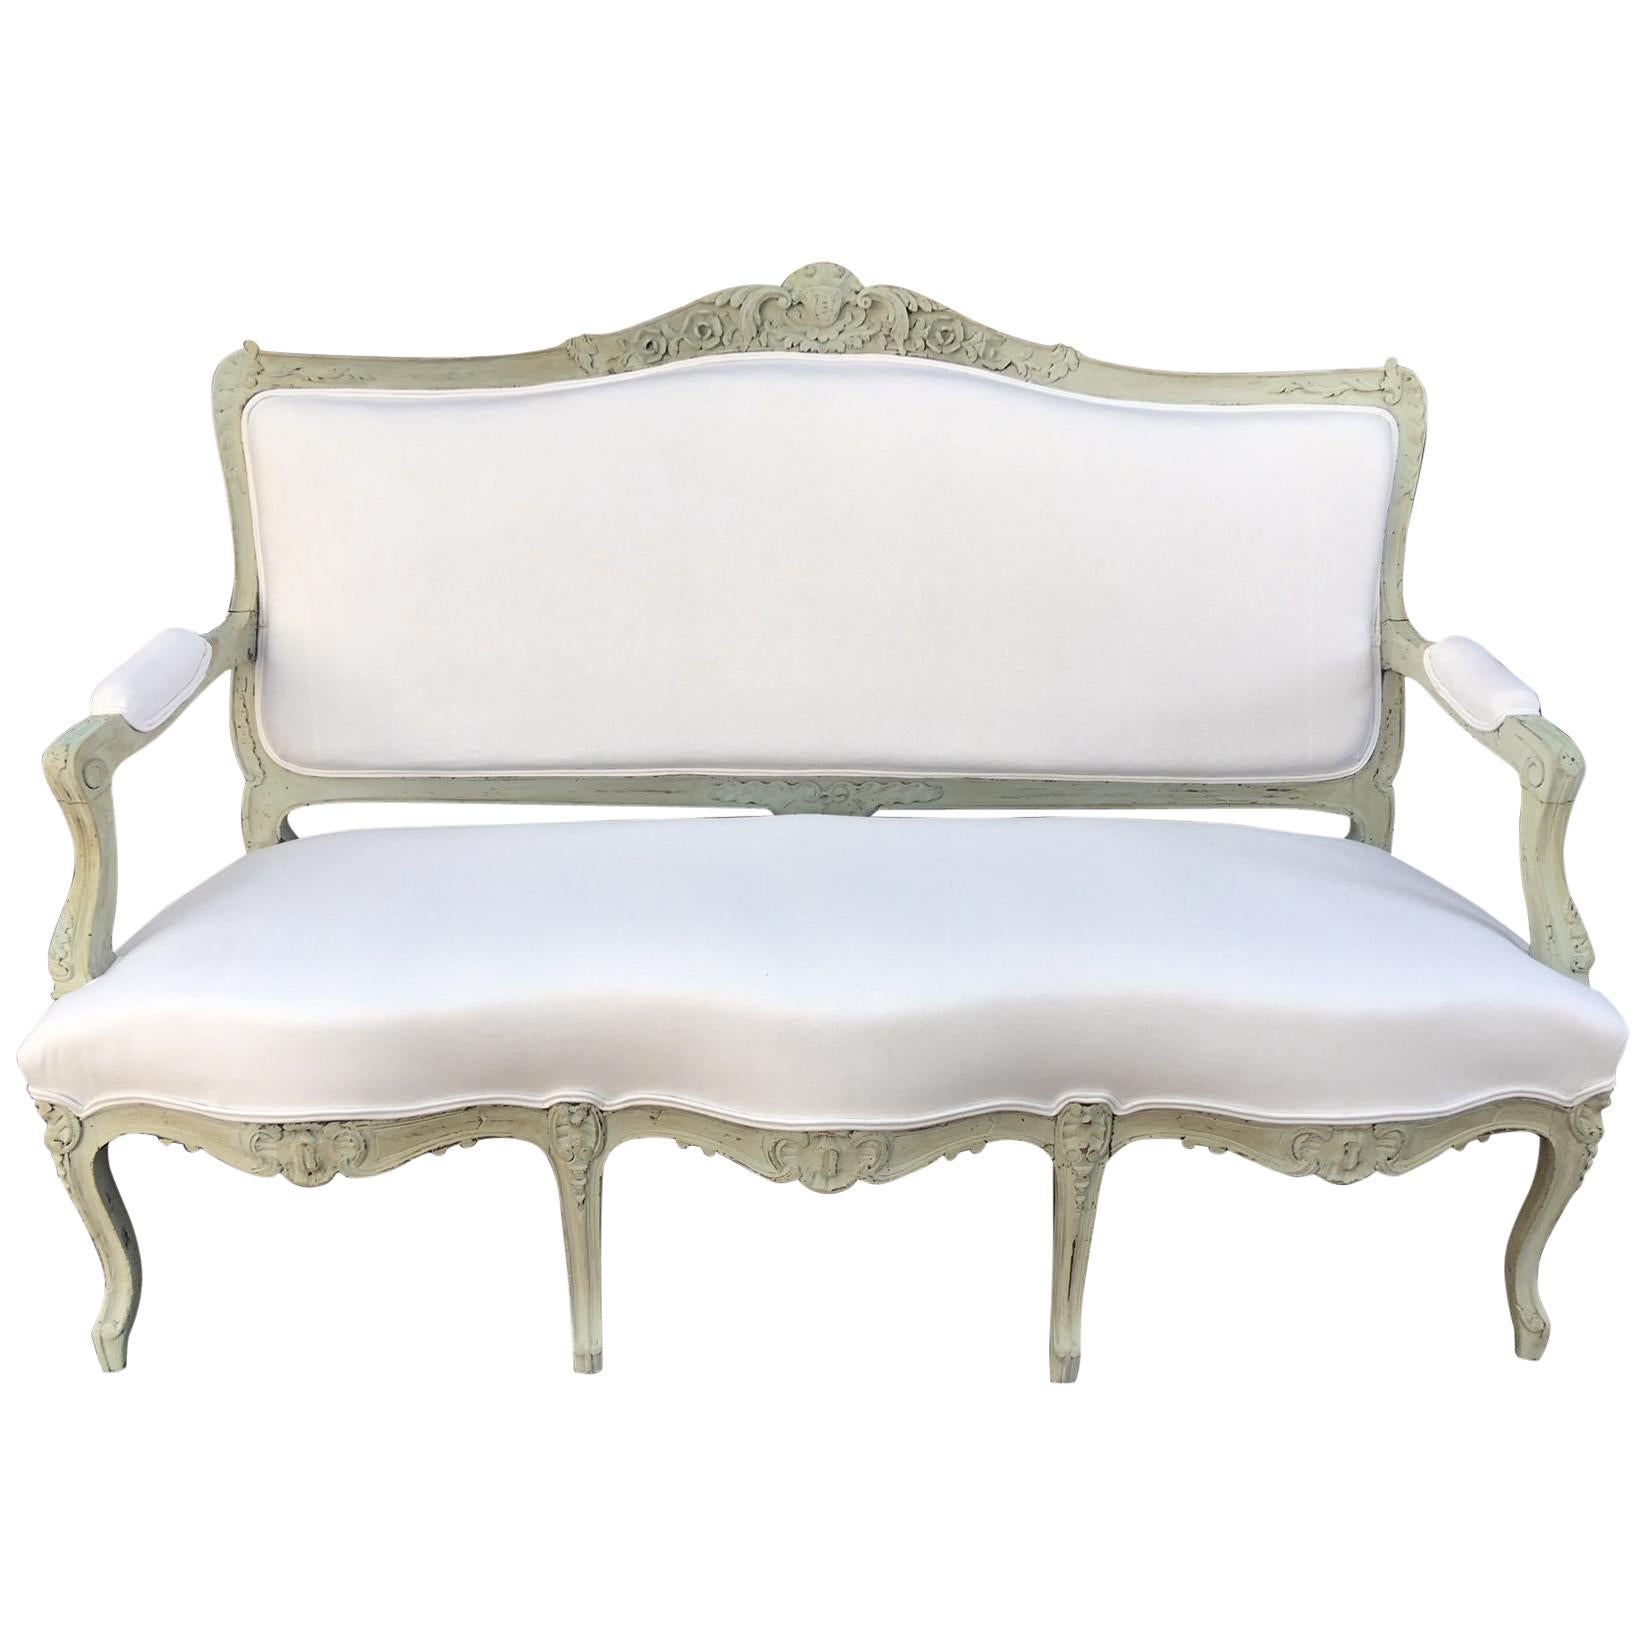 Louis XVI Style French Painted Wood Upholstered Settee or Sofa, 19th Century